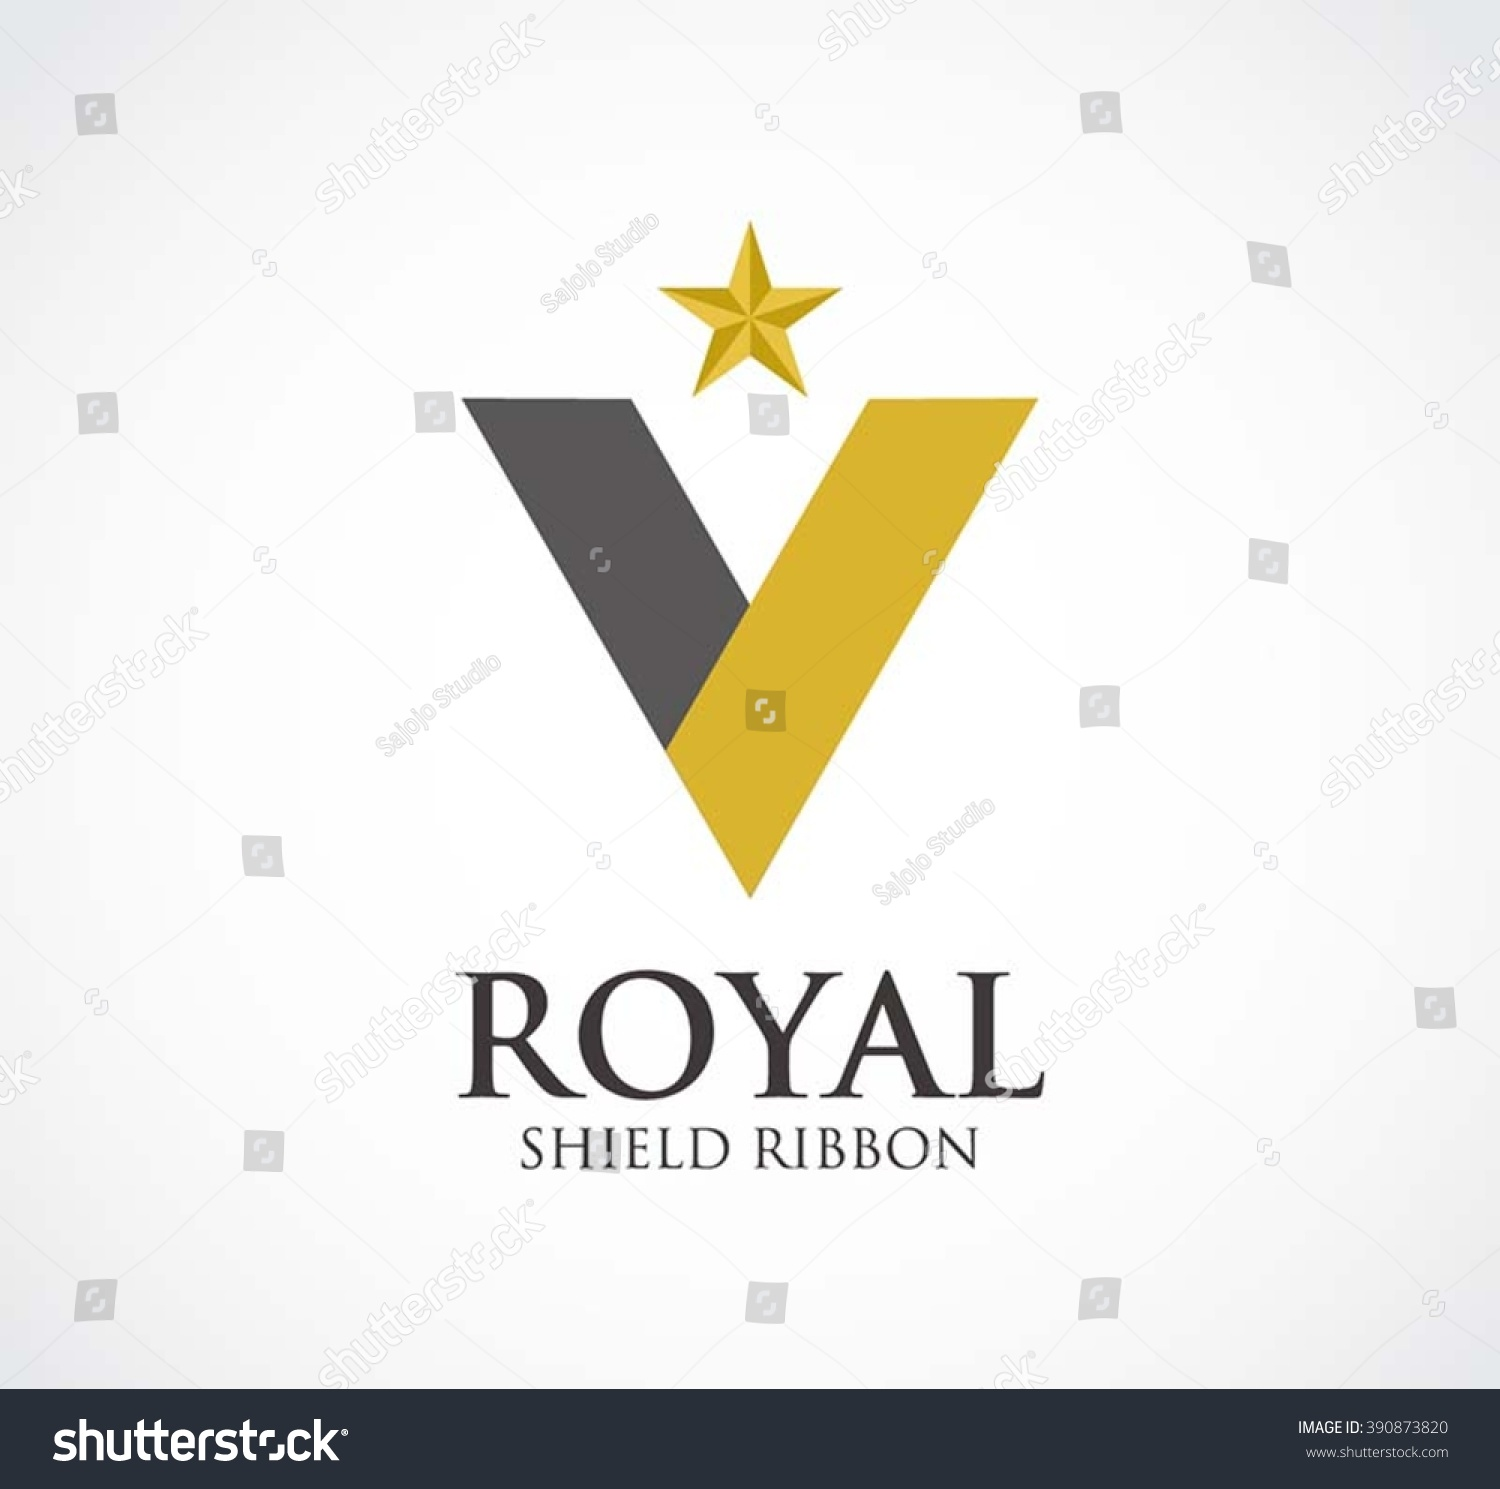 Royal Shield Of Ribbon Protection Abstract Vector And Logo Design Or Template Safety Line Business Icon